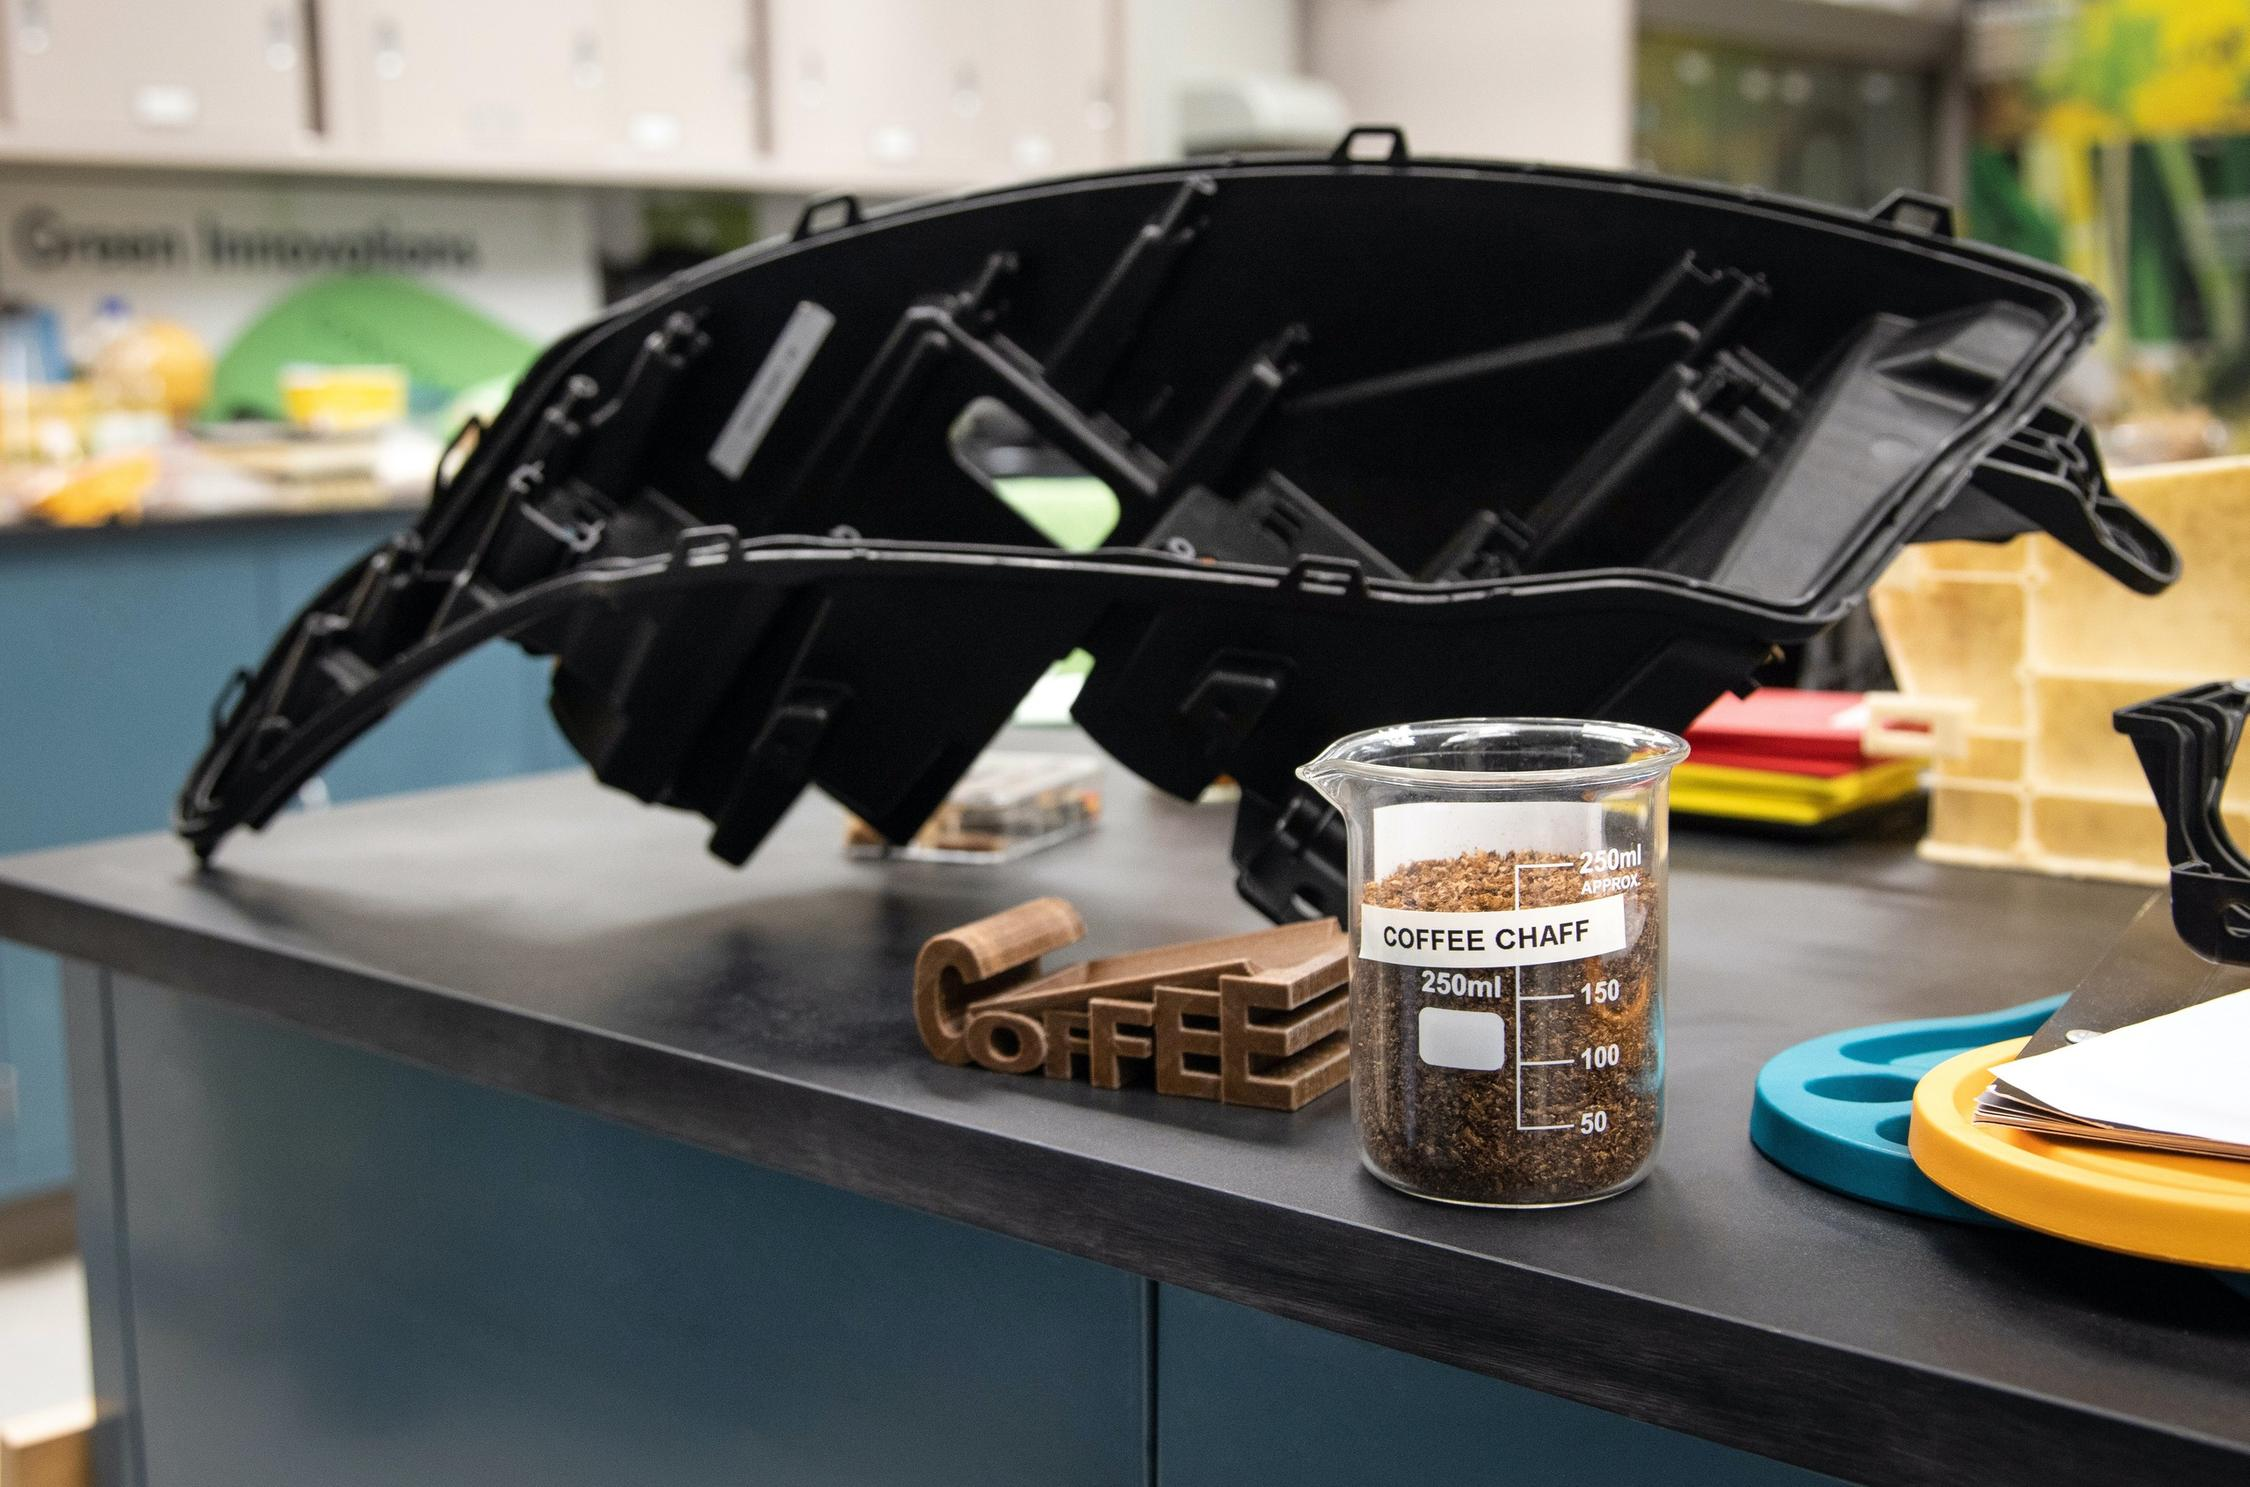 The U.S. automotive giant has struck a partnership deal with McDonald's to recycle coffee bean husks into plastic substances suitable for different in-car components – and even certain parts under the hood.